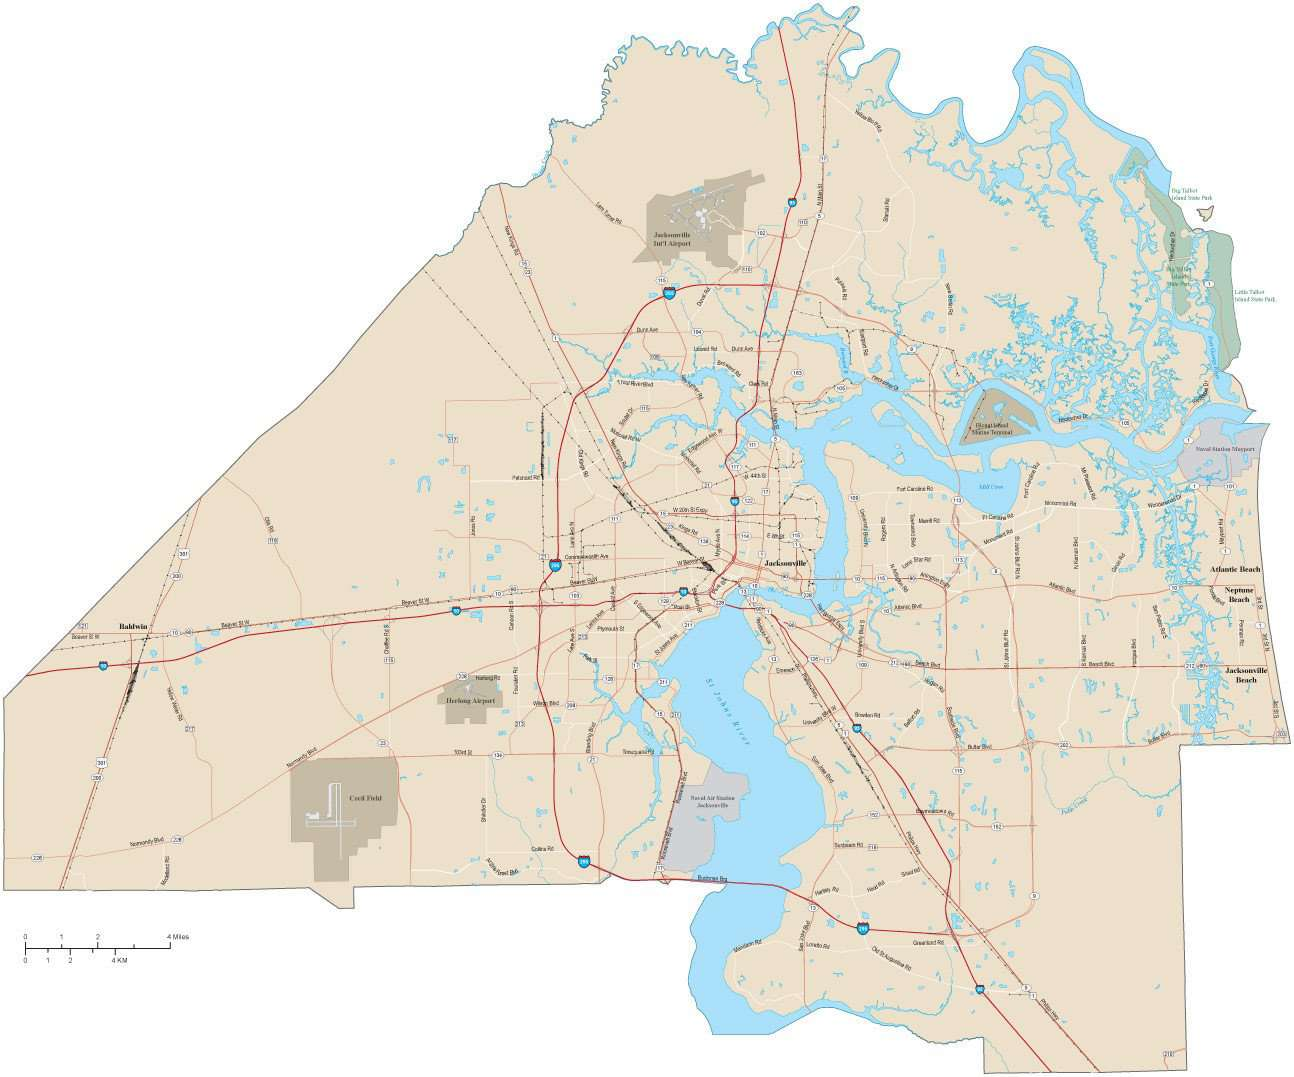 Duval County Fl Map In Adobe Illustrator Vector Format Map Resources